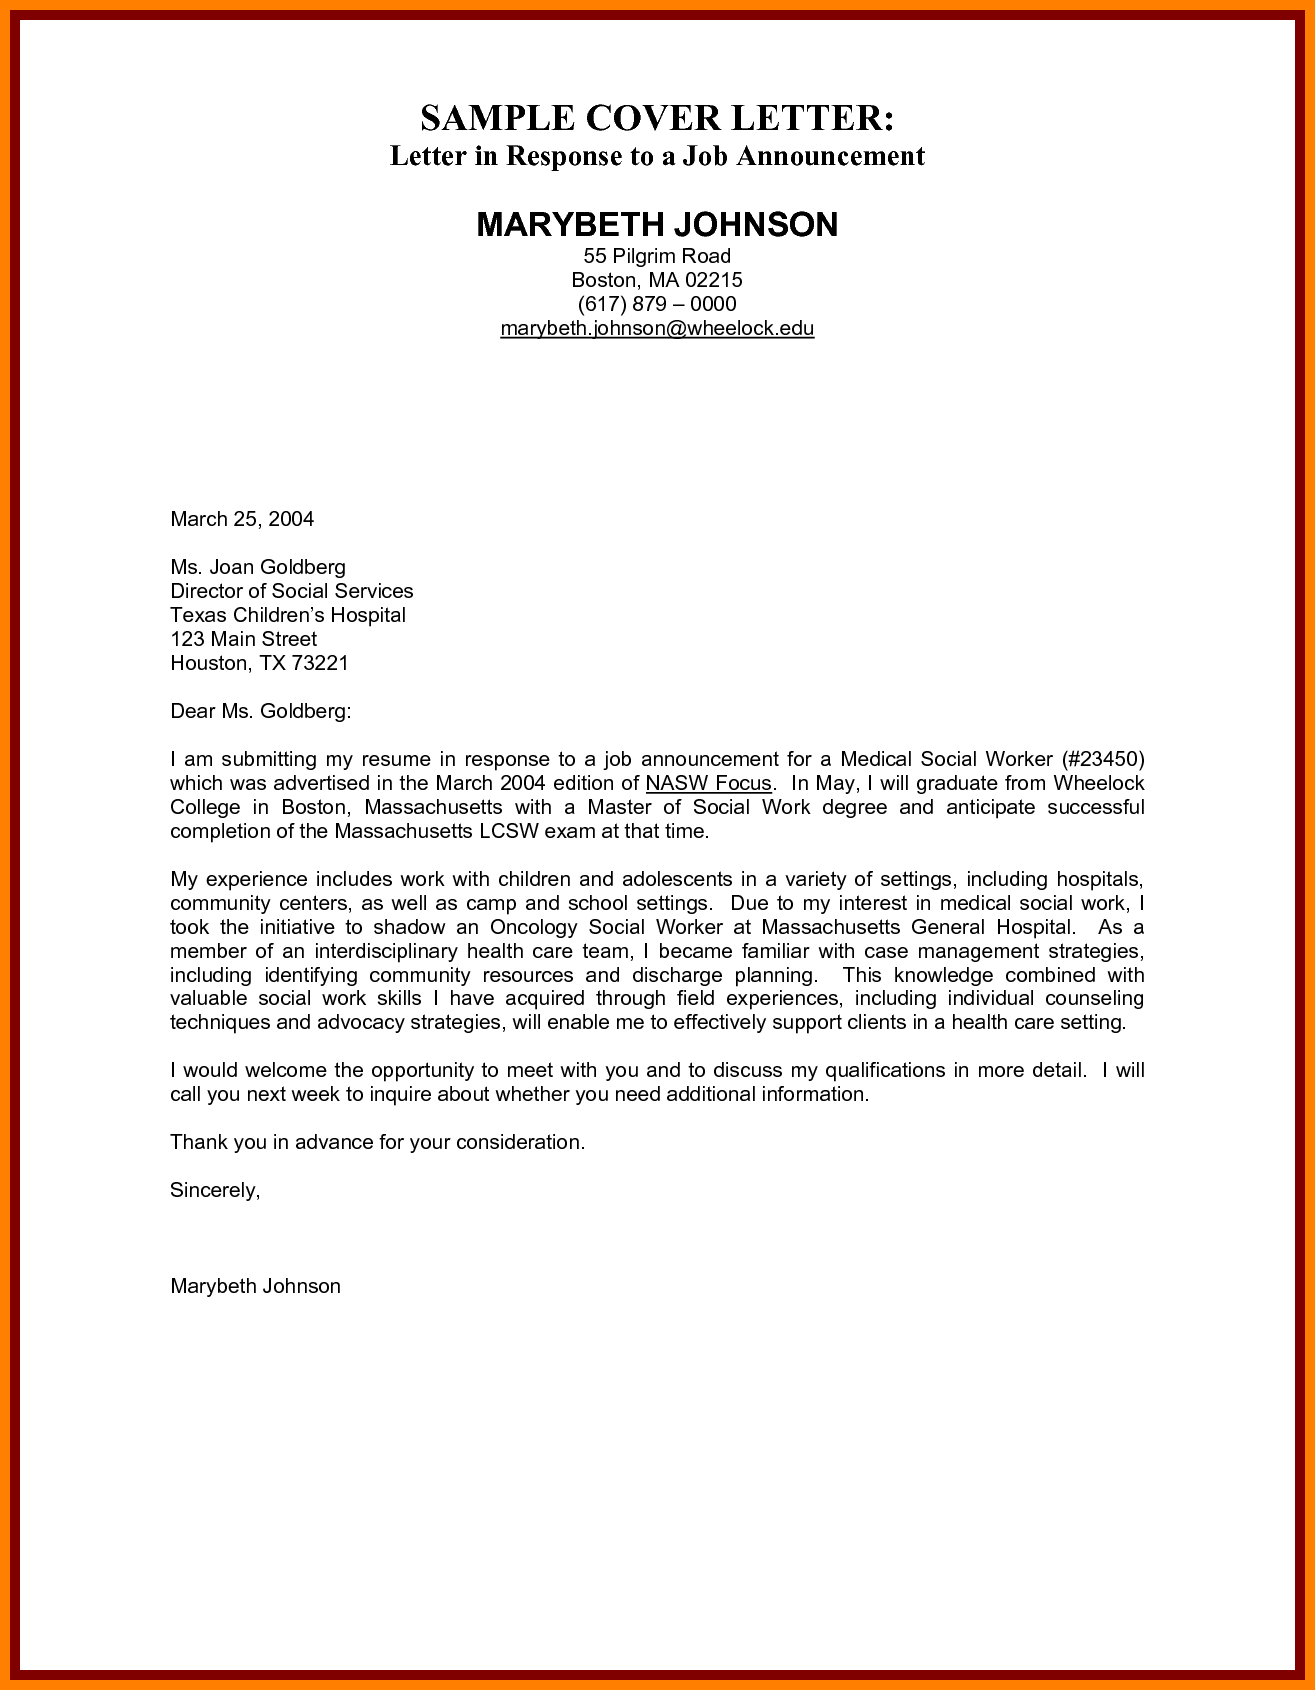 Cover Letter Address Unique Request Letter Driving License Company Texas Drivers Aceable And Inspiration Design